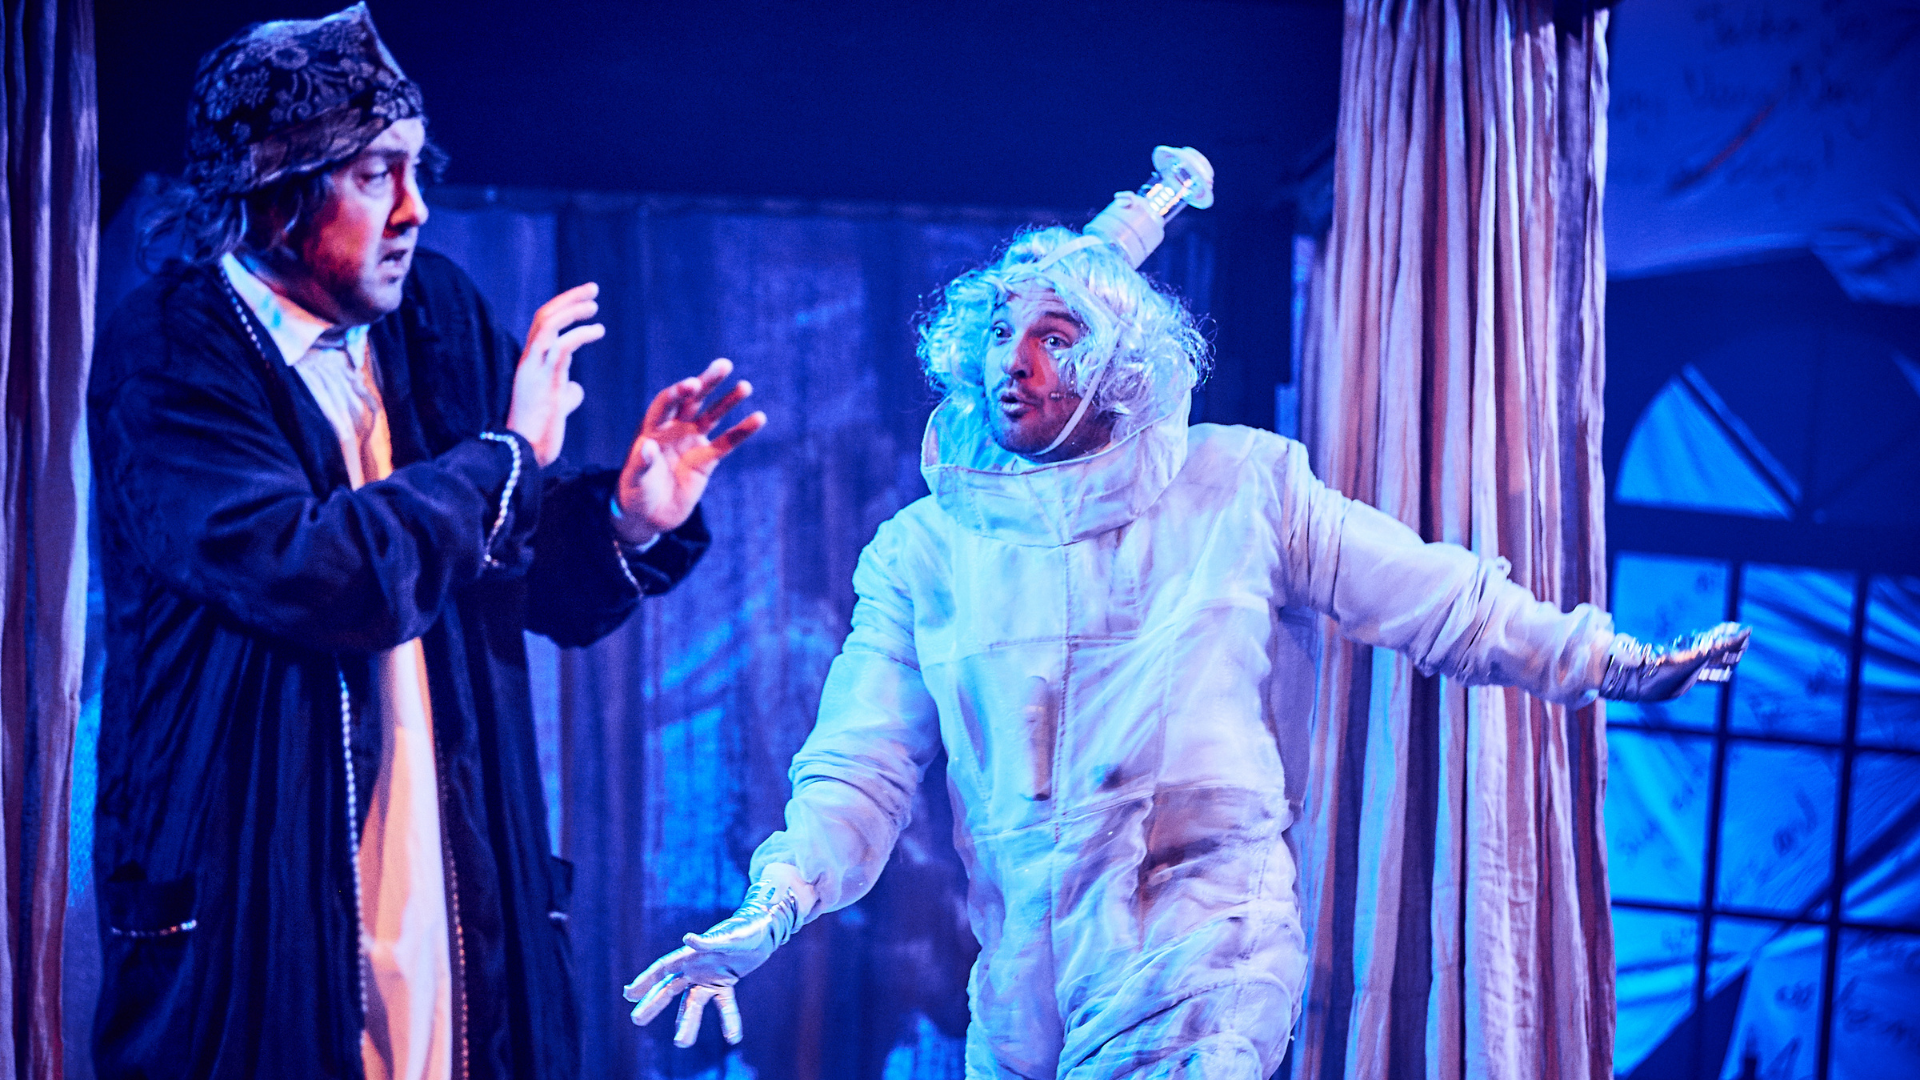 A Christmas Carol production shot: Scrooge looks scared of one of the Christmas ghosts